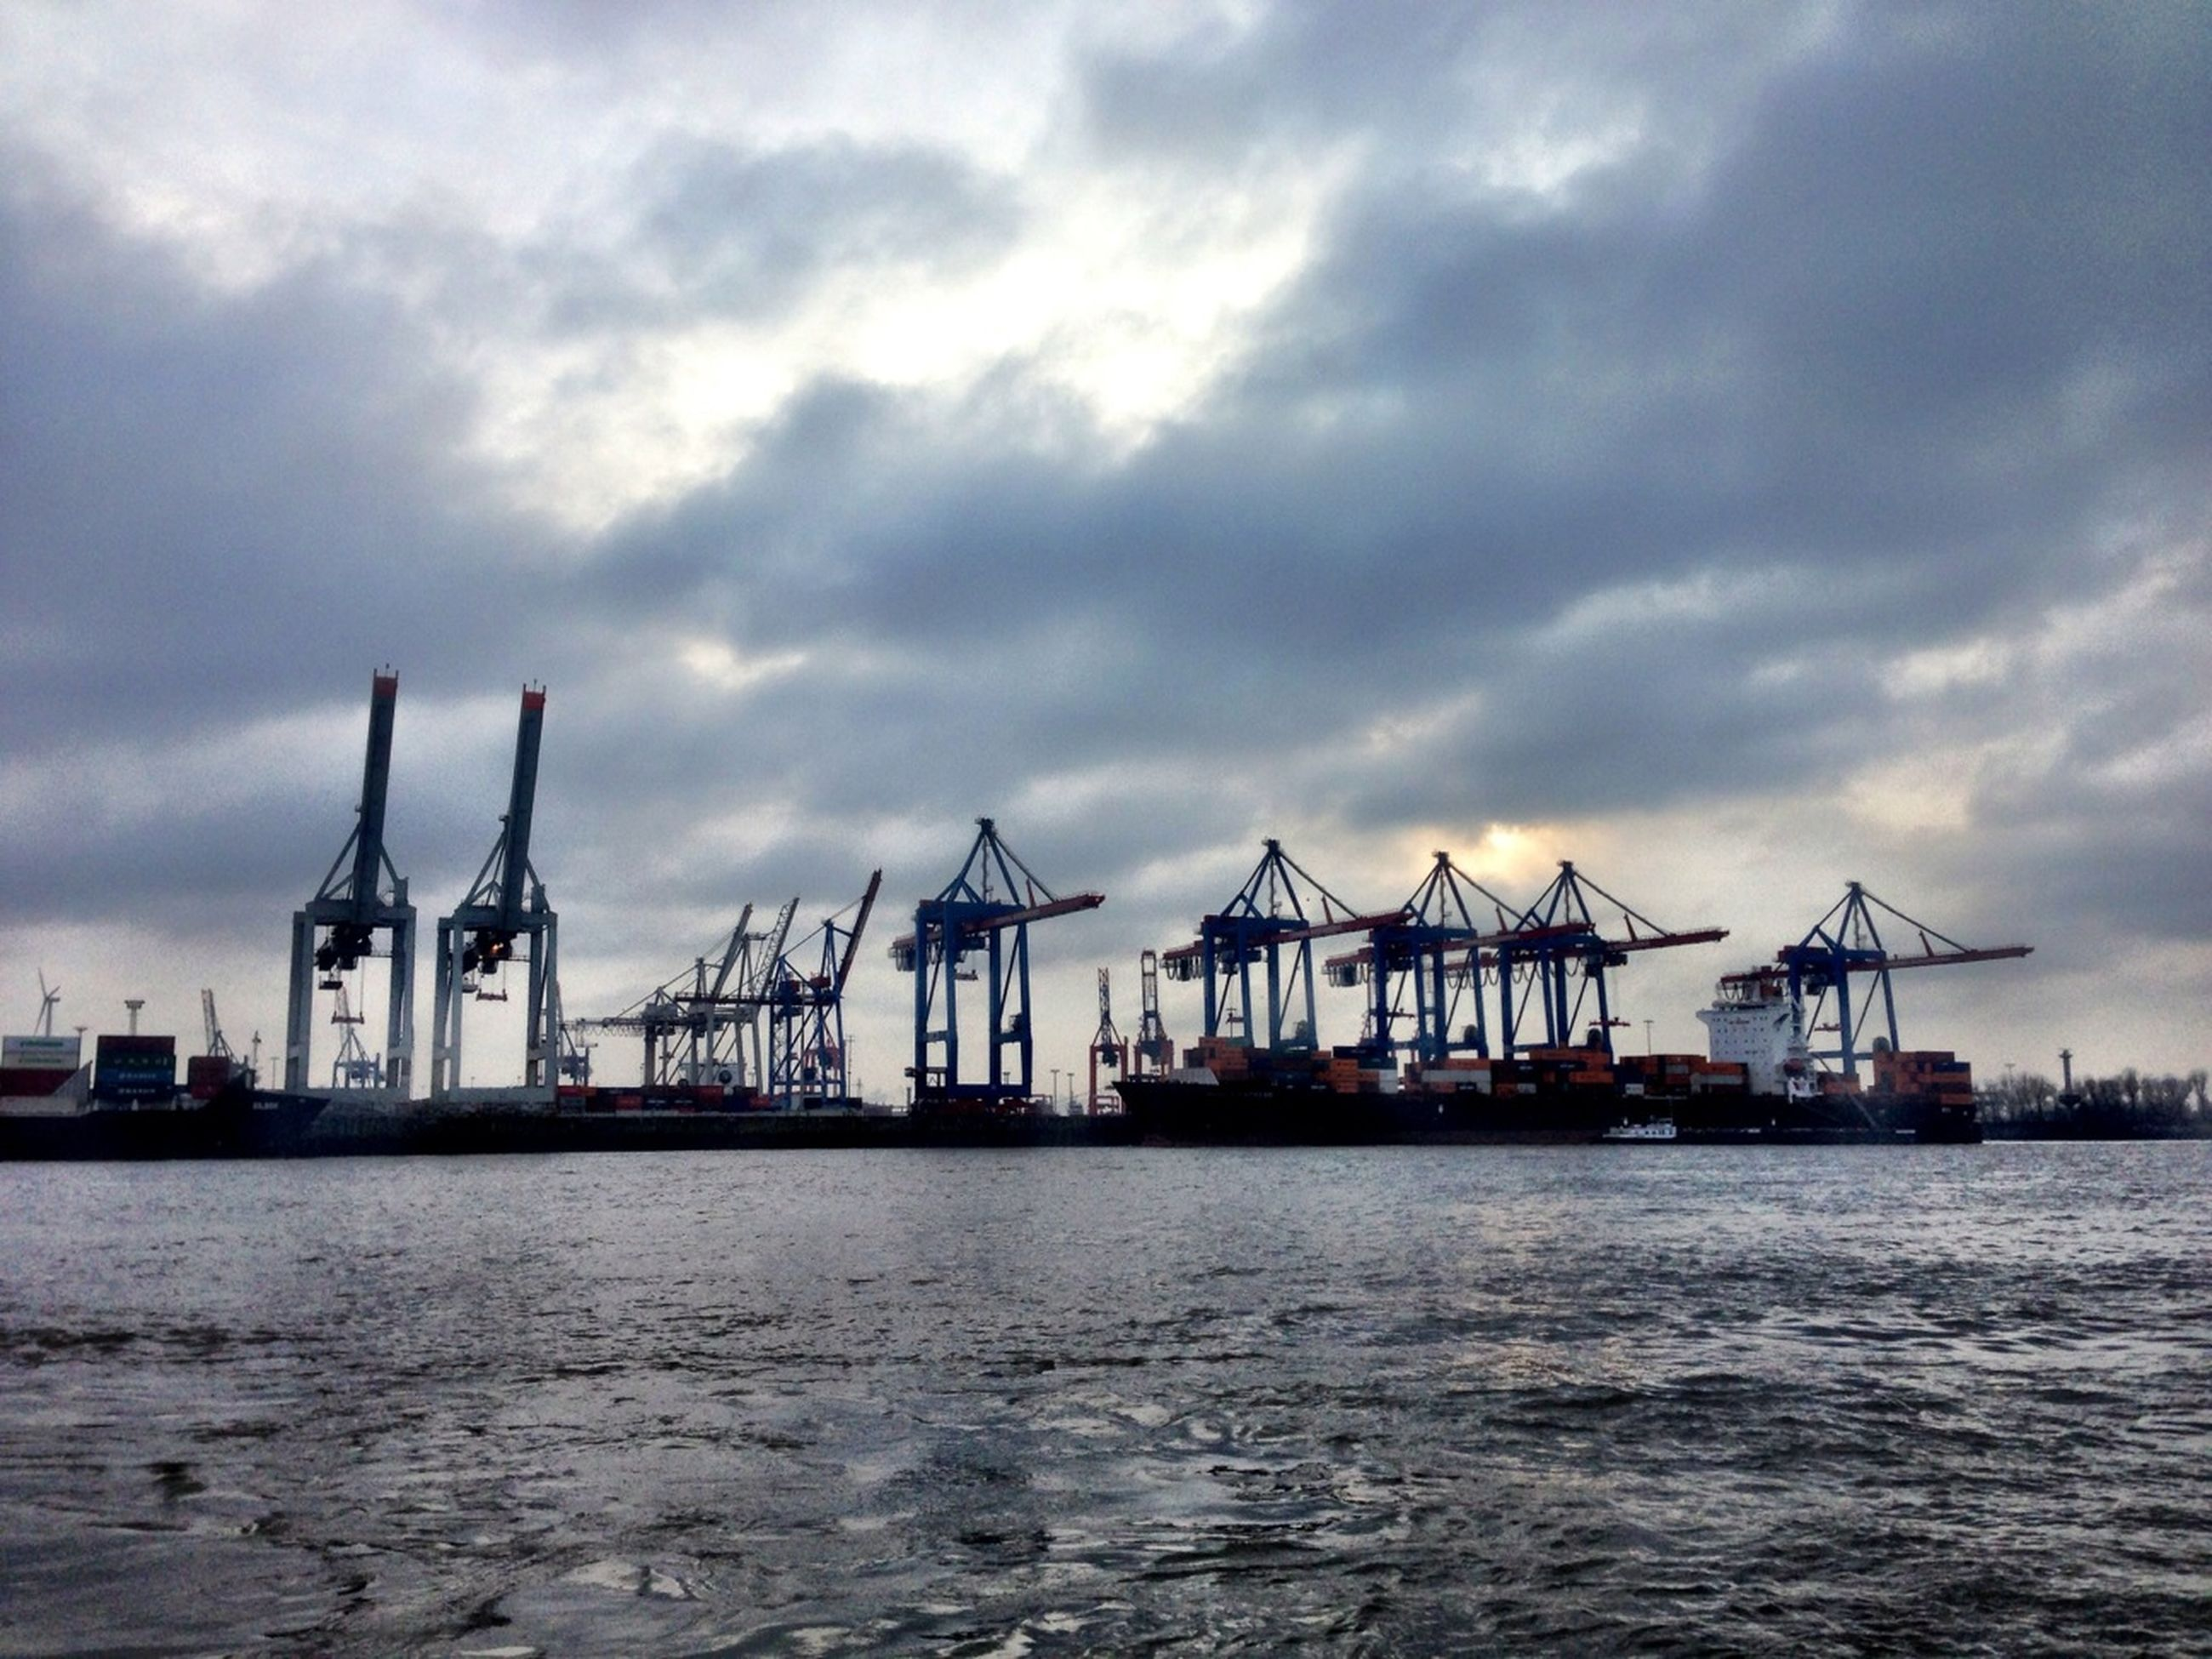 water, waterfront, sky, sea, built structure, nautical vessel, architecture, cloud - sky, transportation, commercial dock, harbor, cloudy, building exterior, mode of transport, ship, crane - construction machinery, industry, freight transportation, cloud, shipping